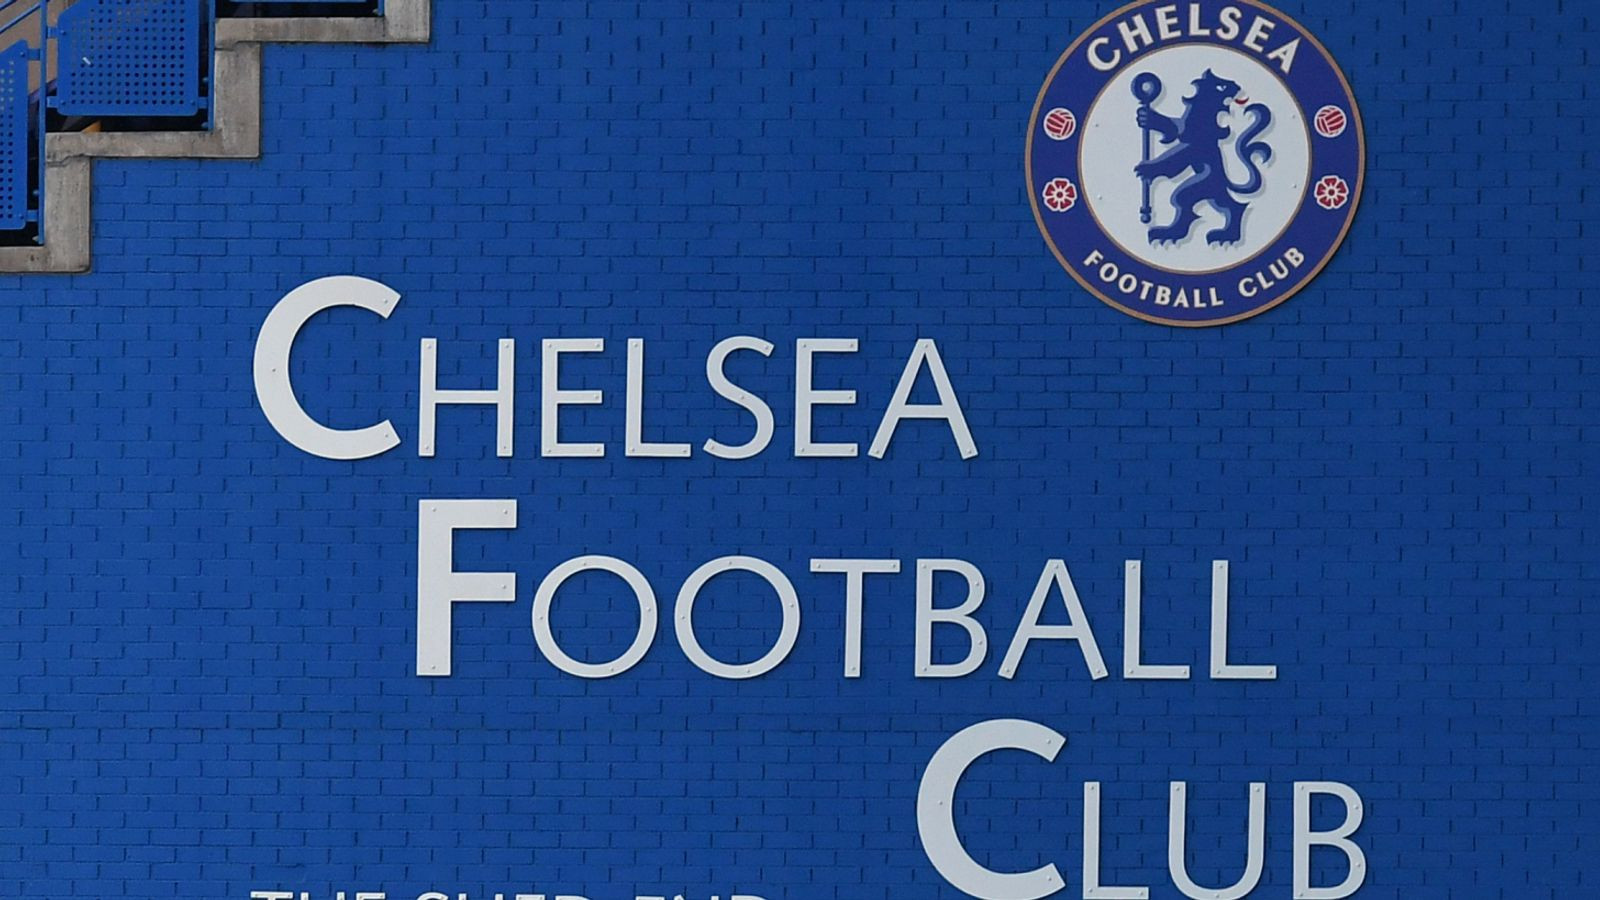 Chelsea issue 10-year ban to individual over antisemitic messages posted online